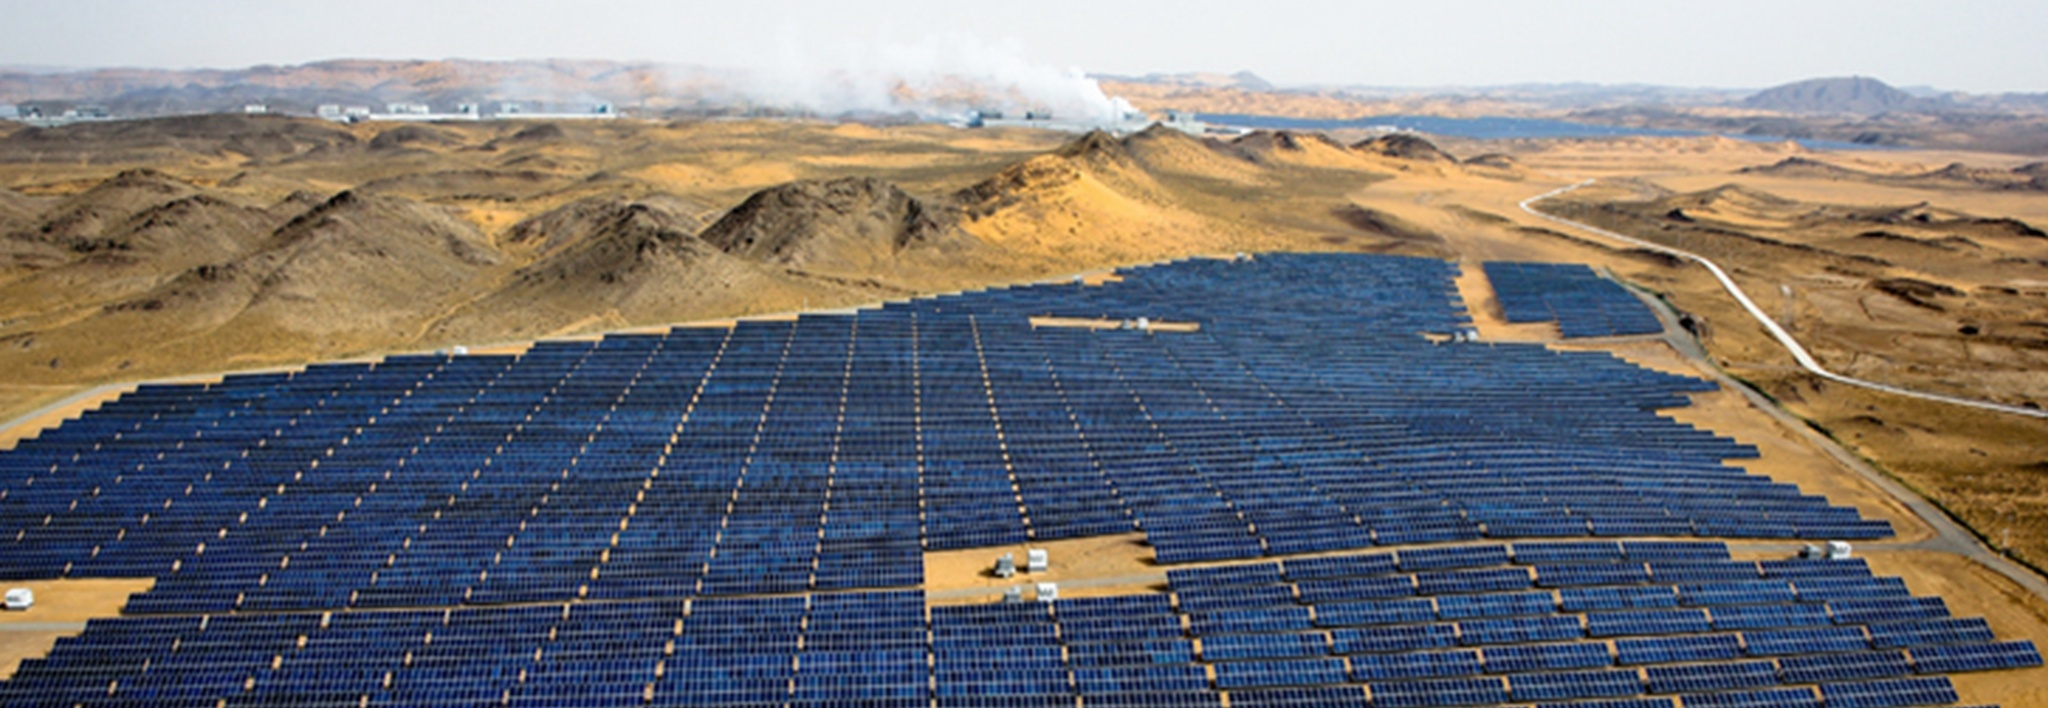 Clenergy 30MW PV Power Plant in Ningxia China